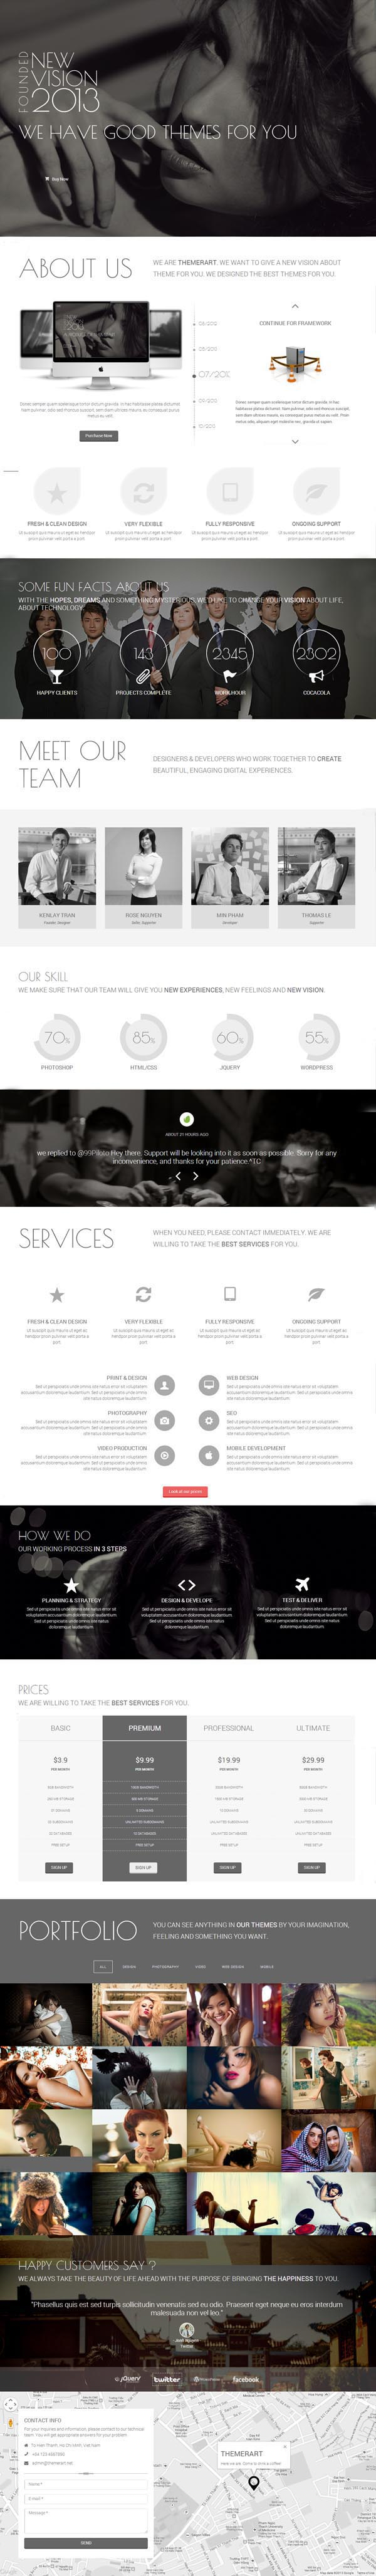 HTML5 Responsive Website Templates | Web Design | Graphic Design ...